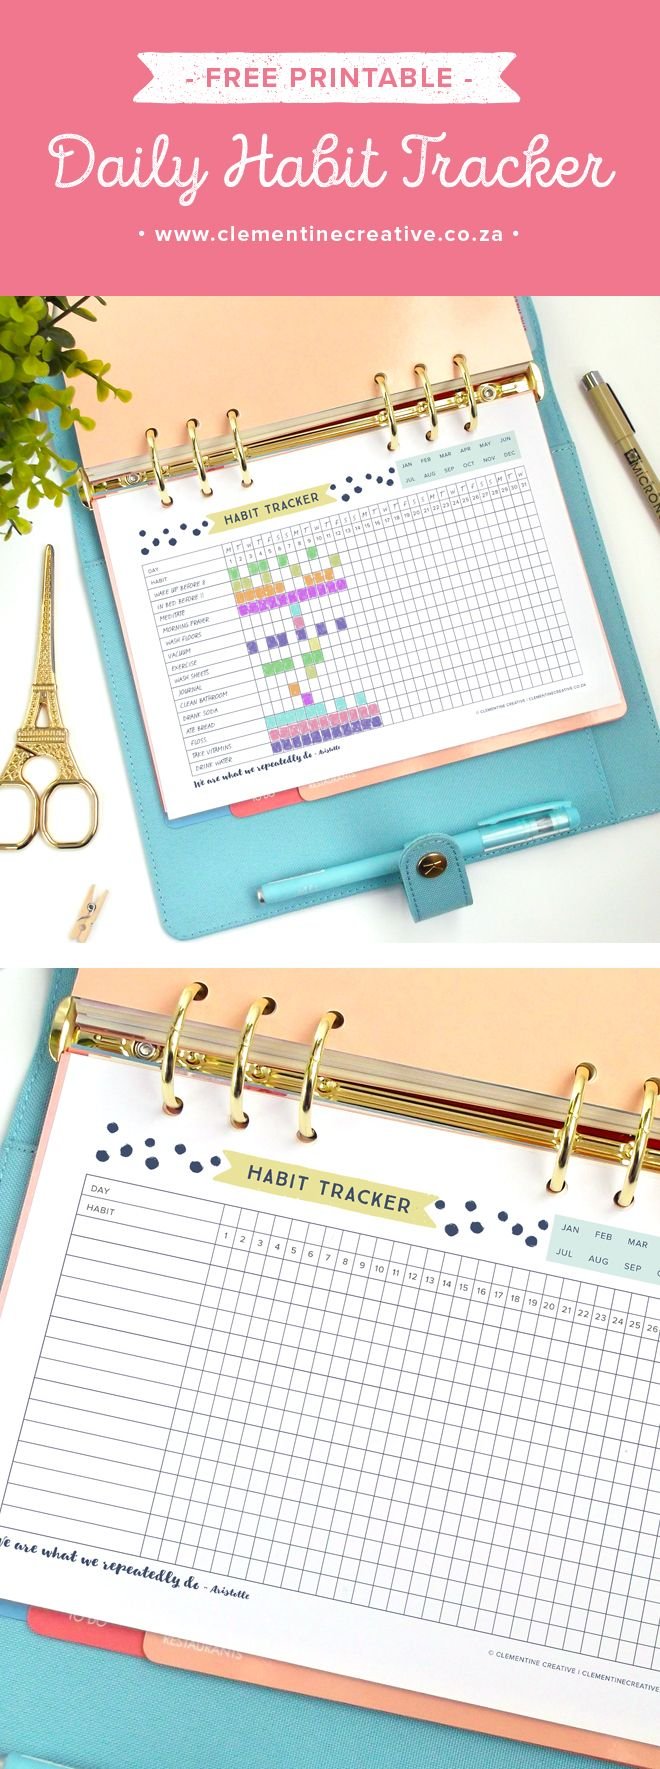 Reach your goals with this free printable daily habit tracker. Use it to keep track of tasks and habits. Download it here for free and place it in your binder or A5 Filofax or large kikki.K planner. Más